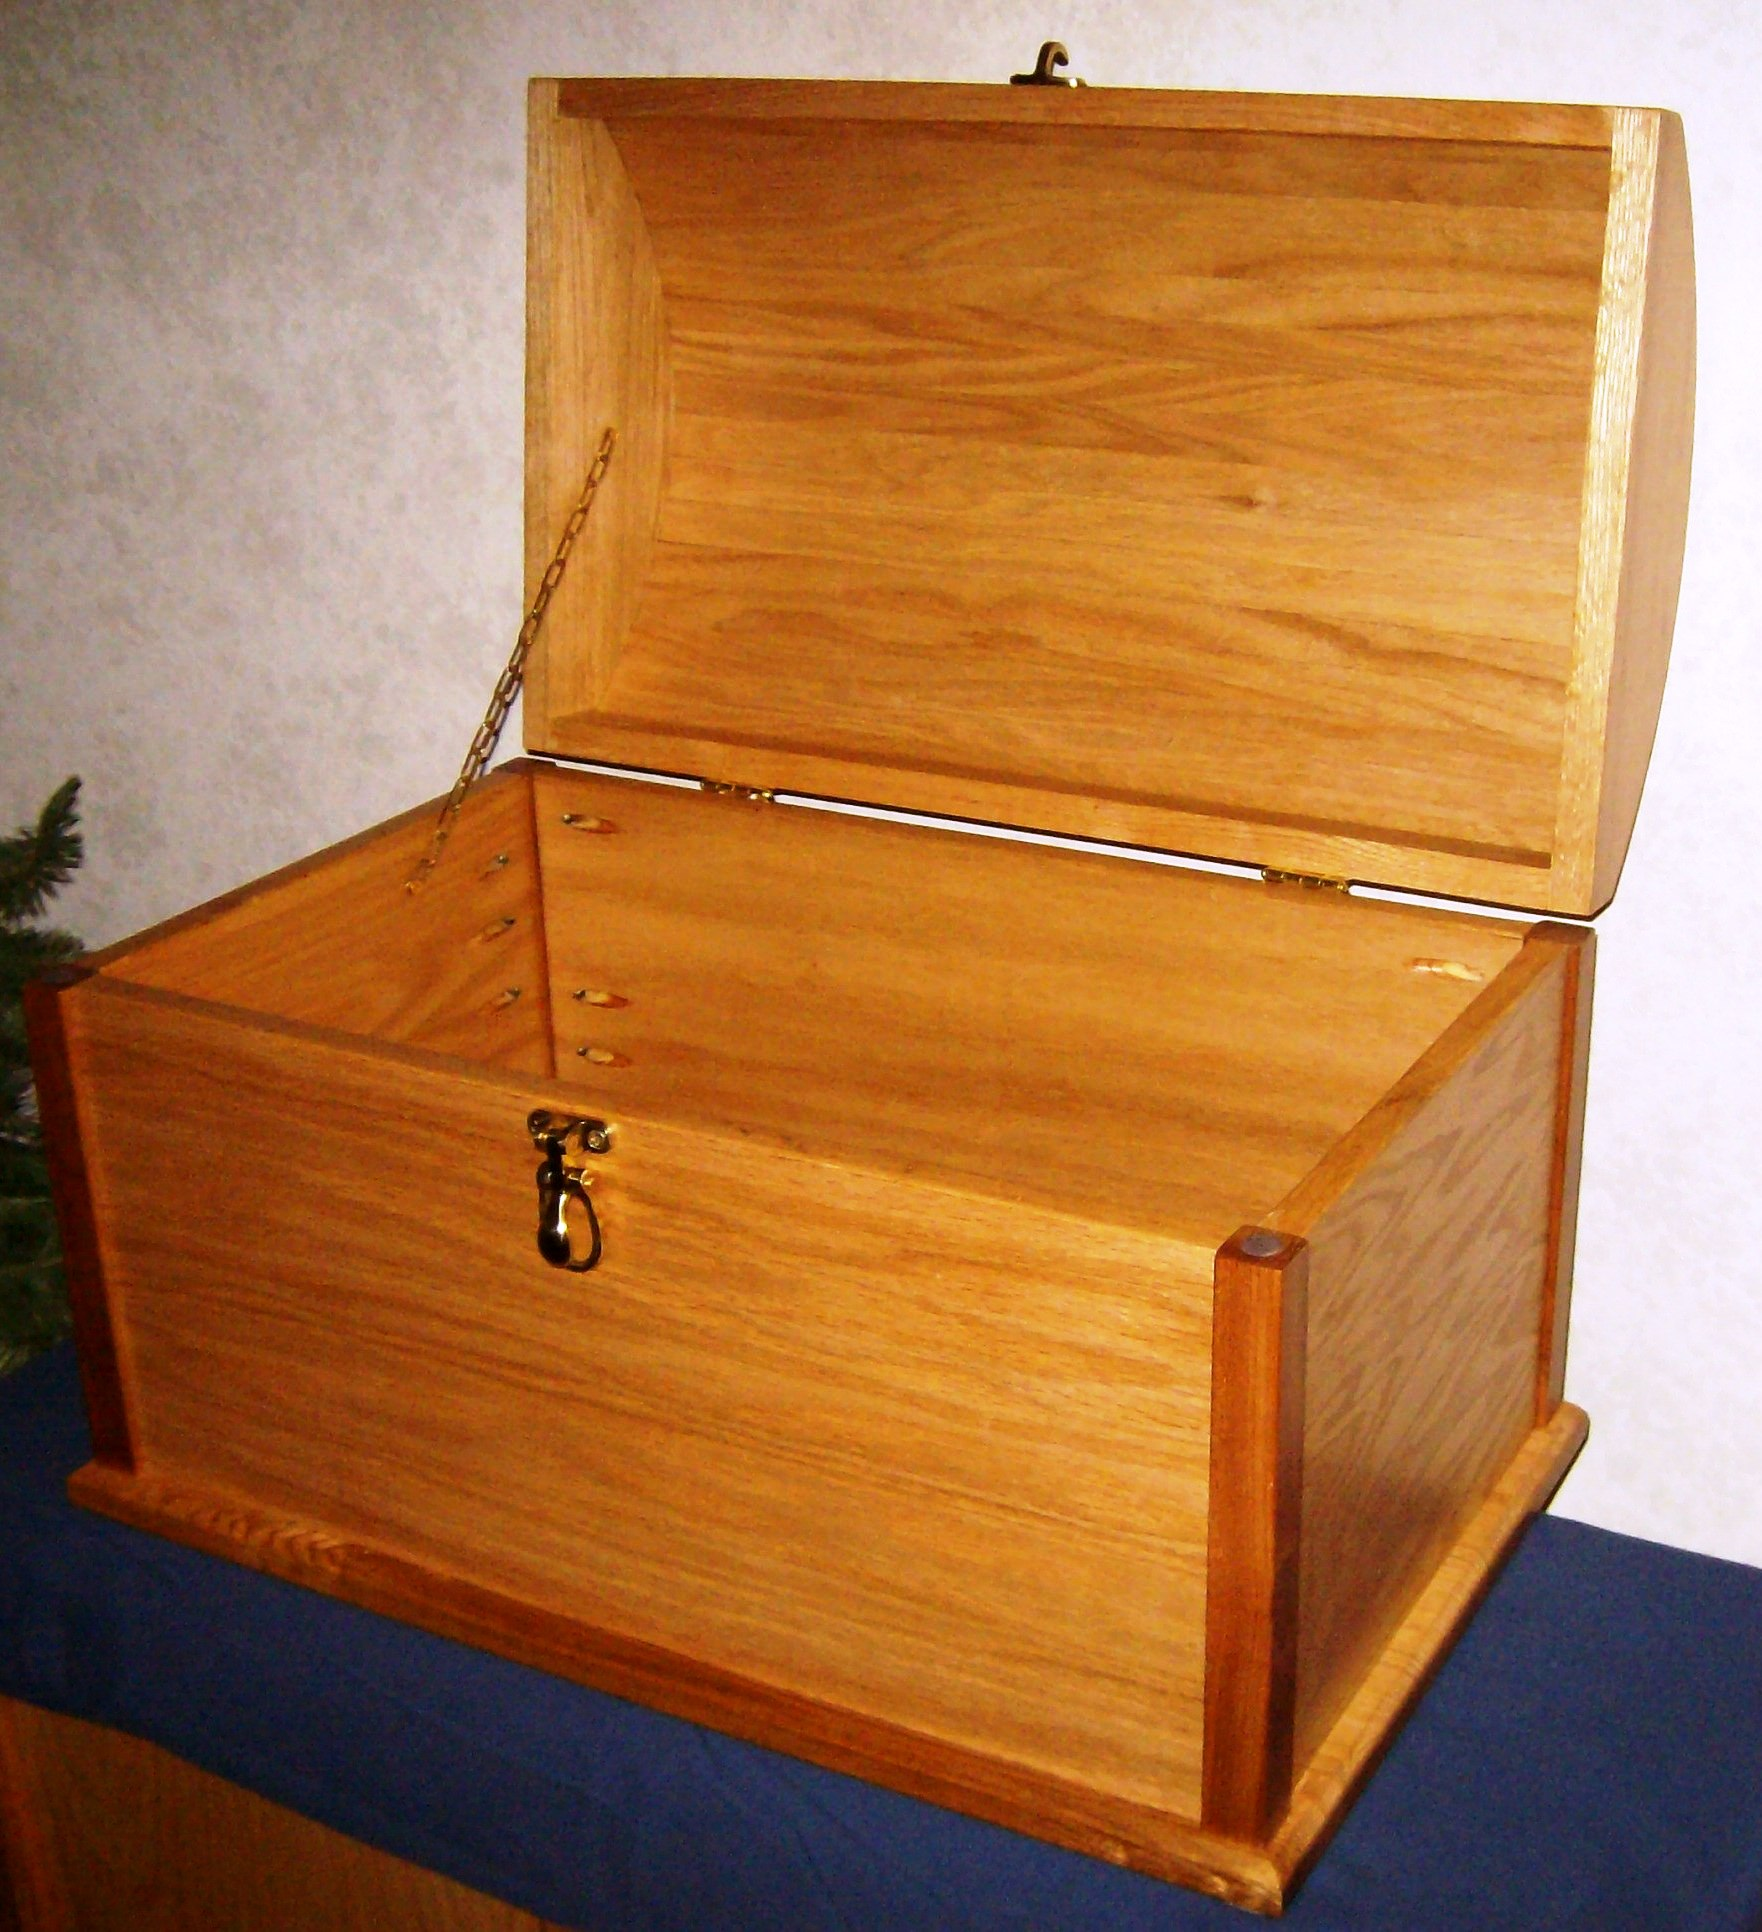 woodworking plans a treasure chest